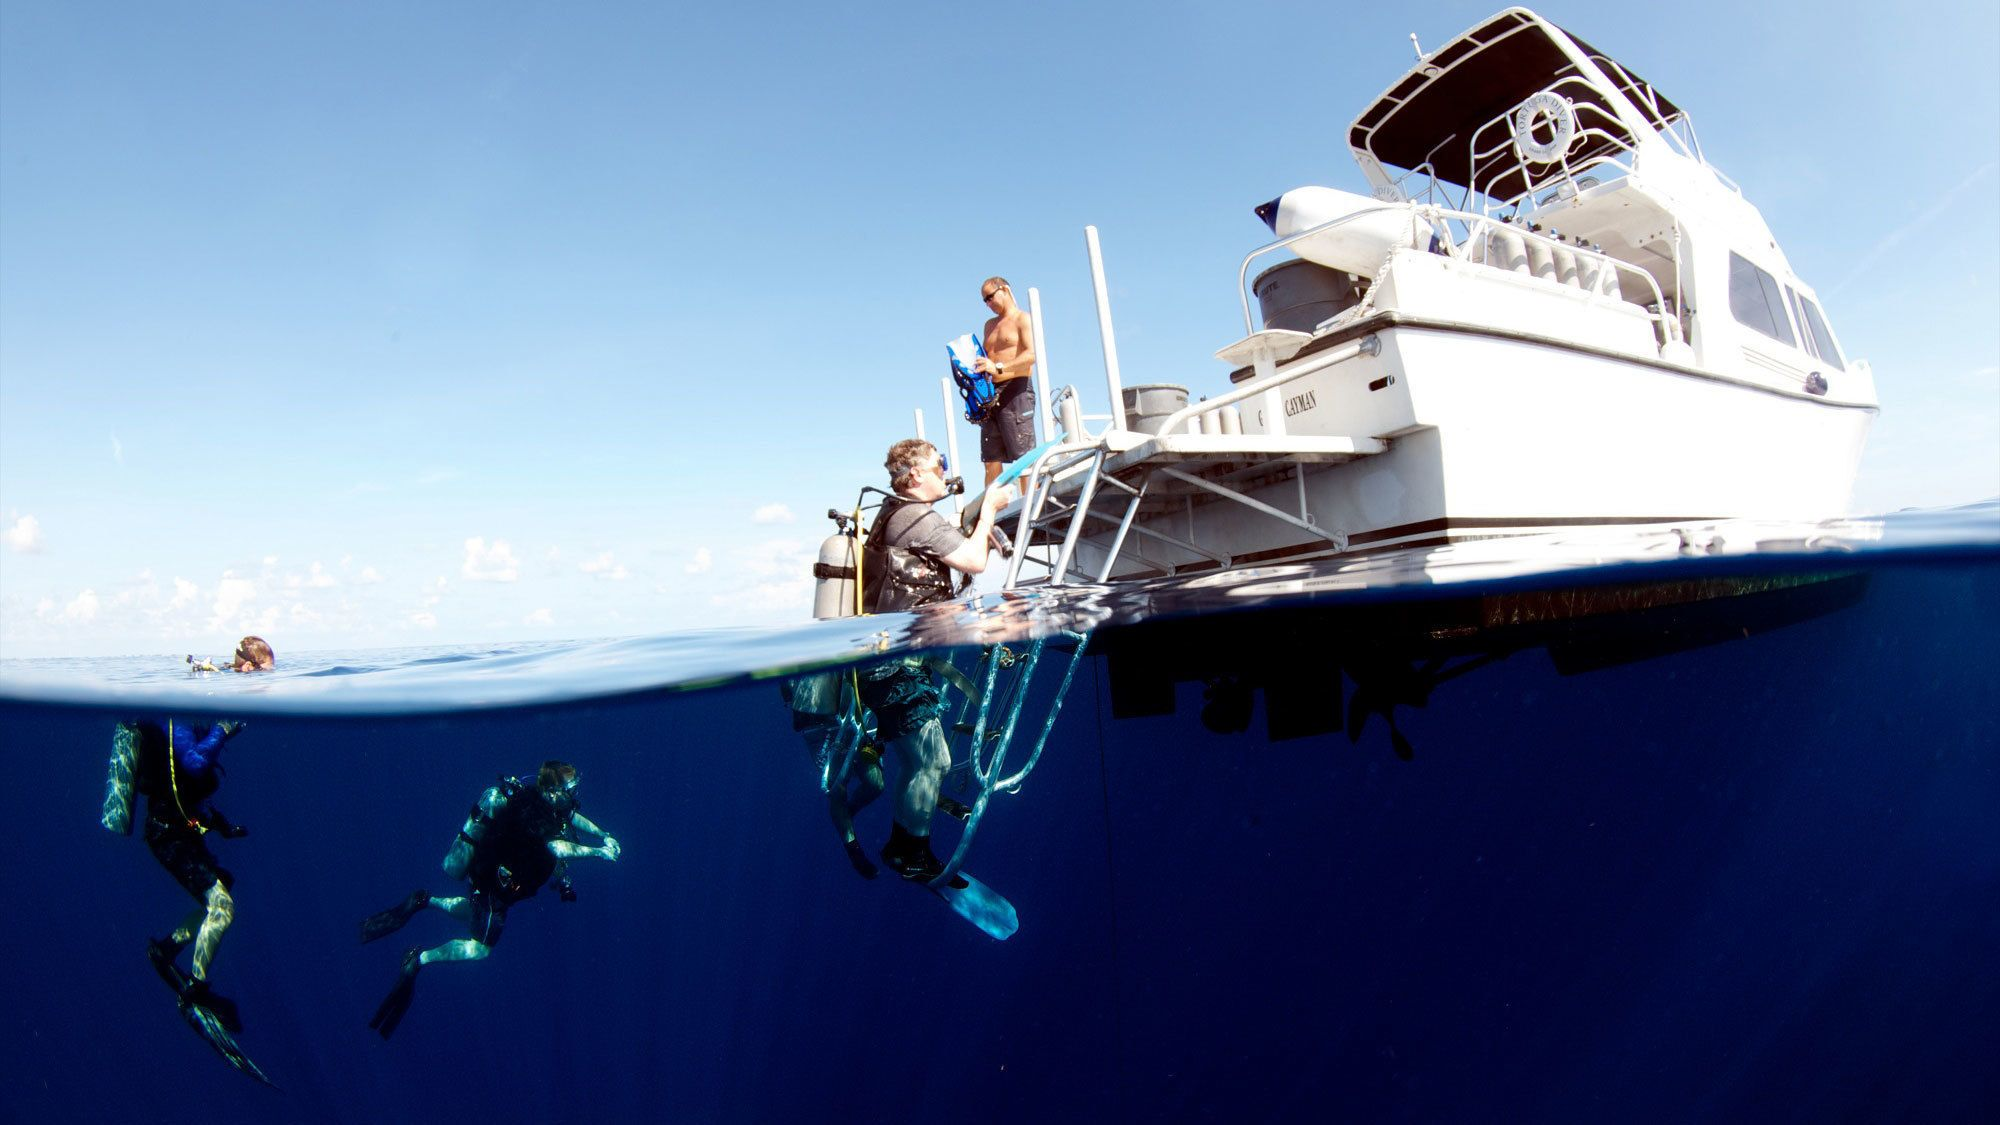 Scuba divers climbing onto a boat in Grand Cayman